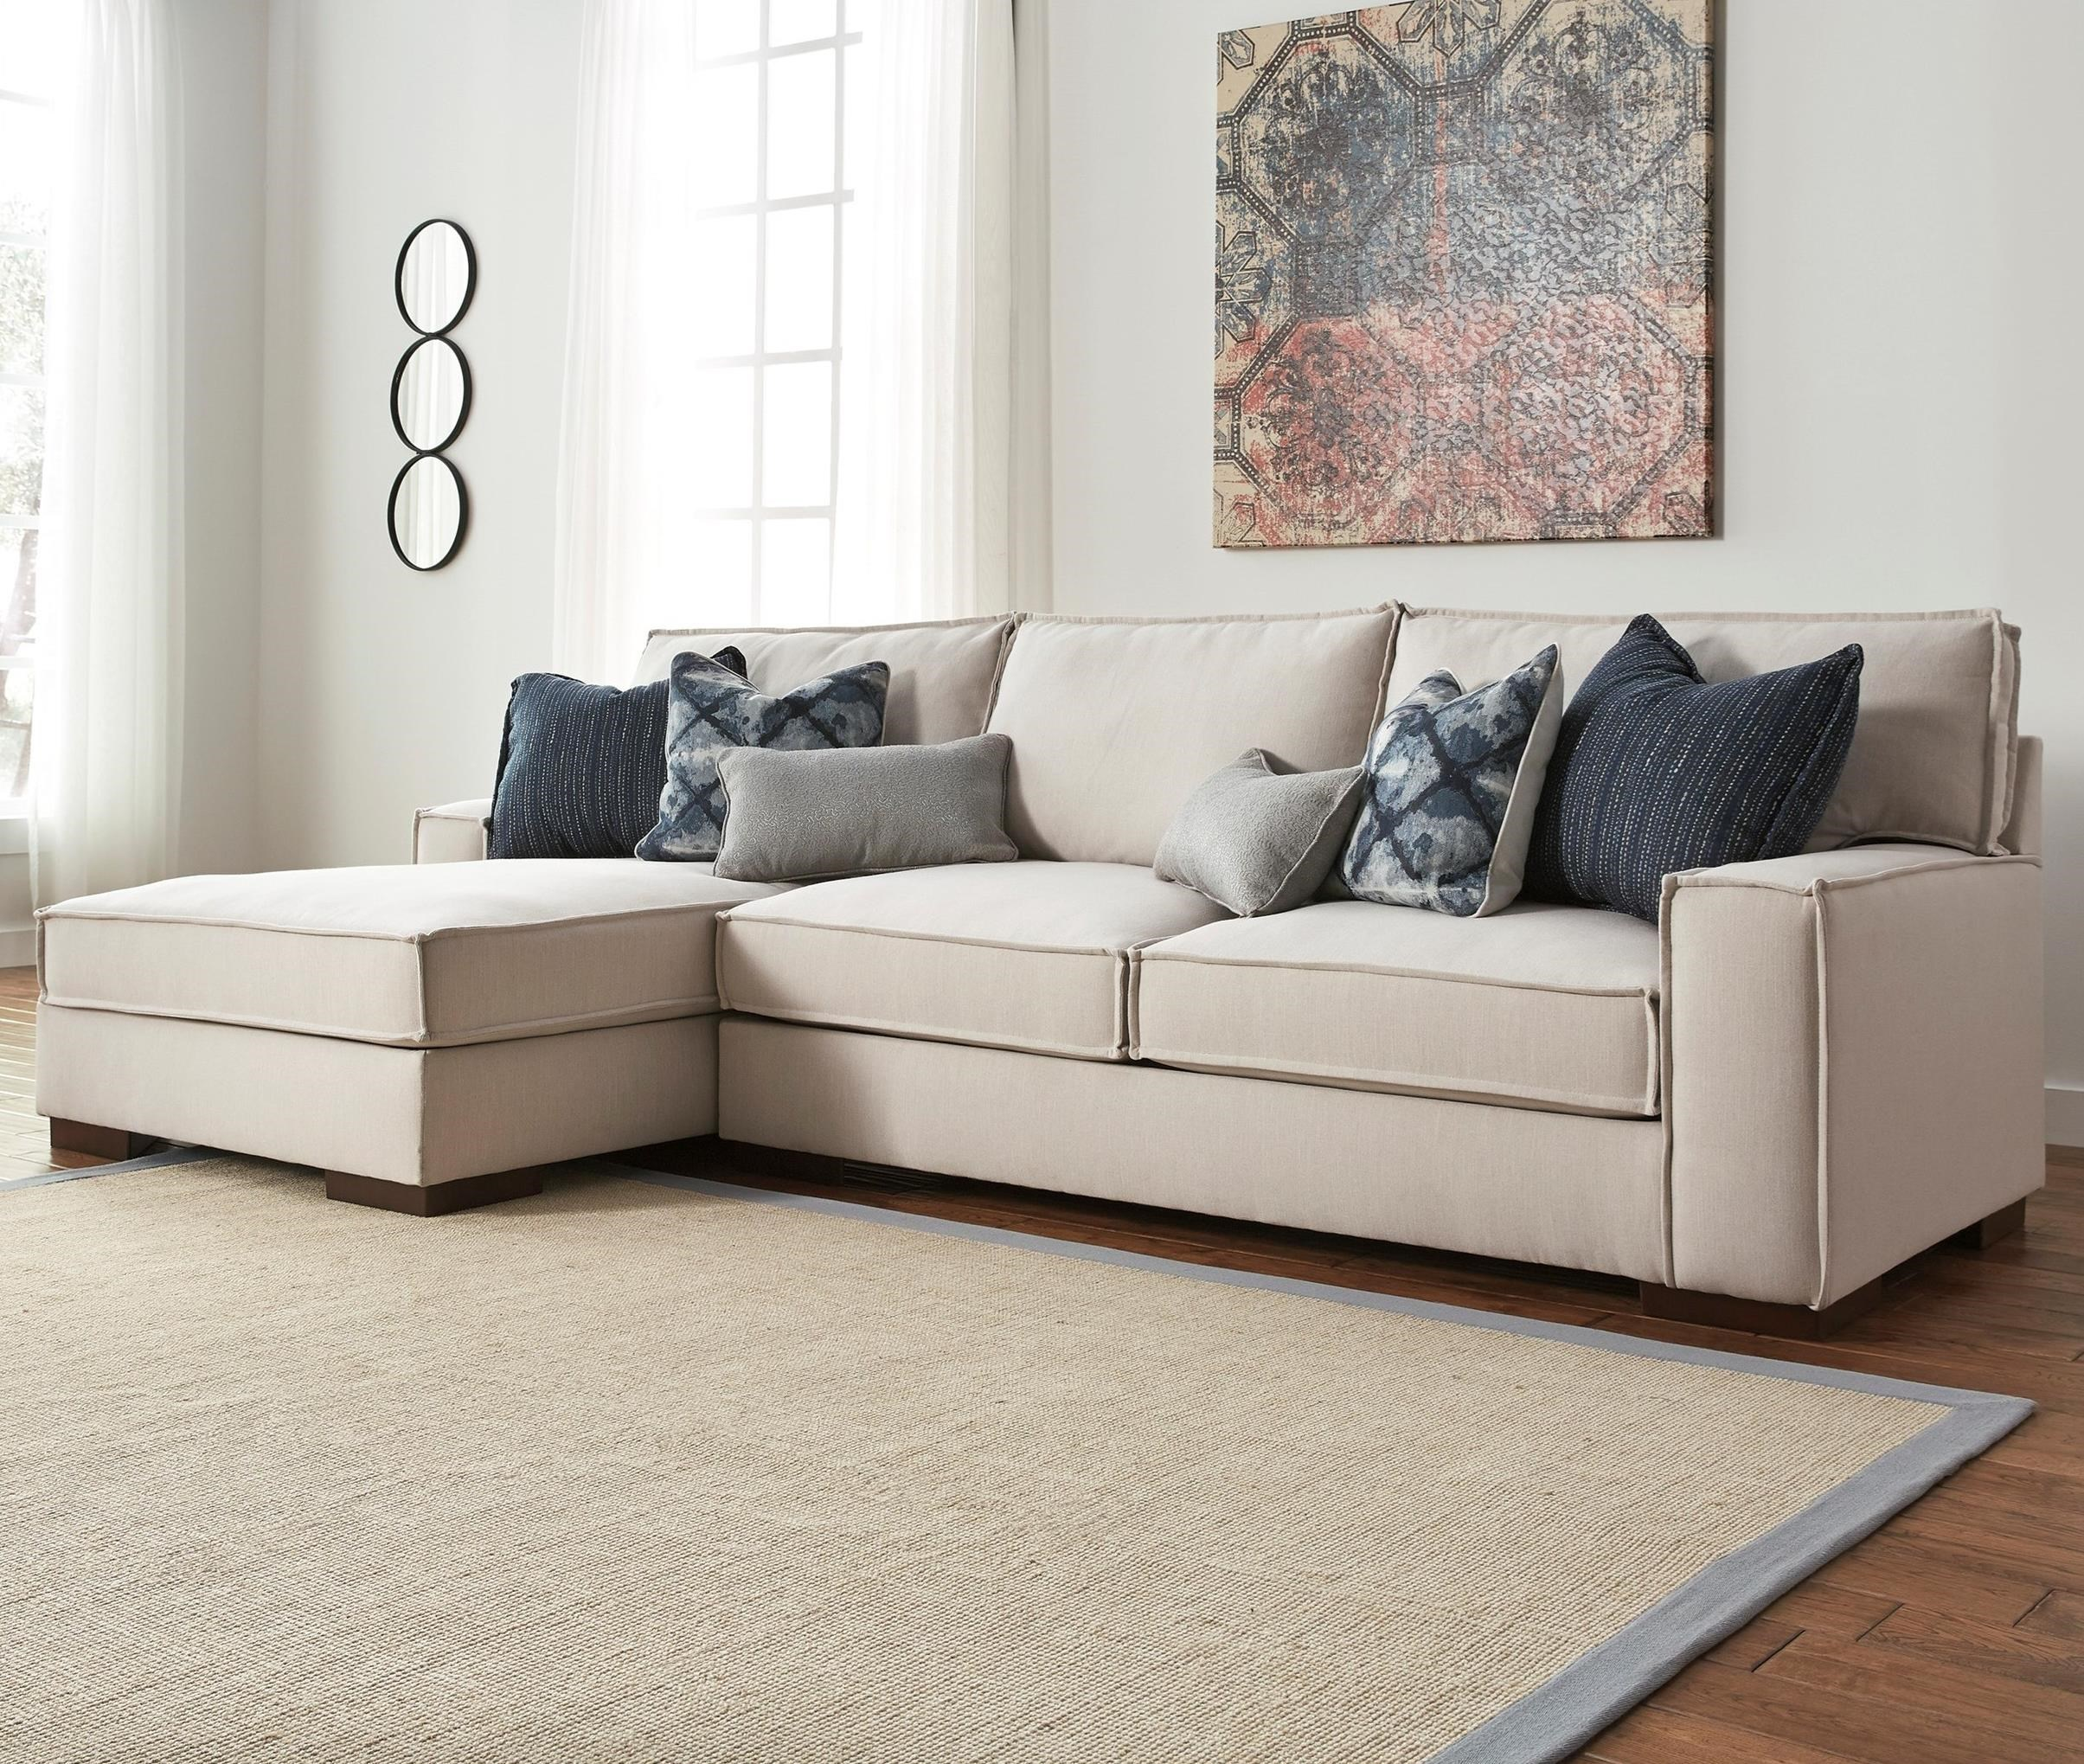 Attirant Benchcraft Kendleton Modern 2 Piece Sectional With Left Chaise And  UltraPlush Seat Cushions